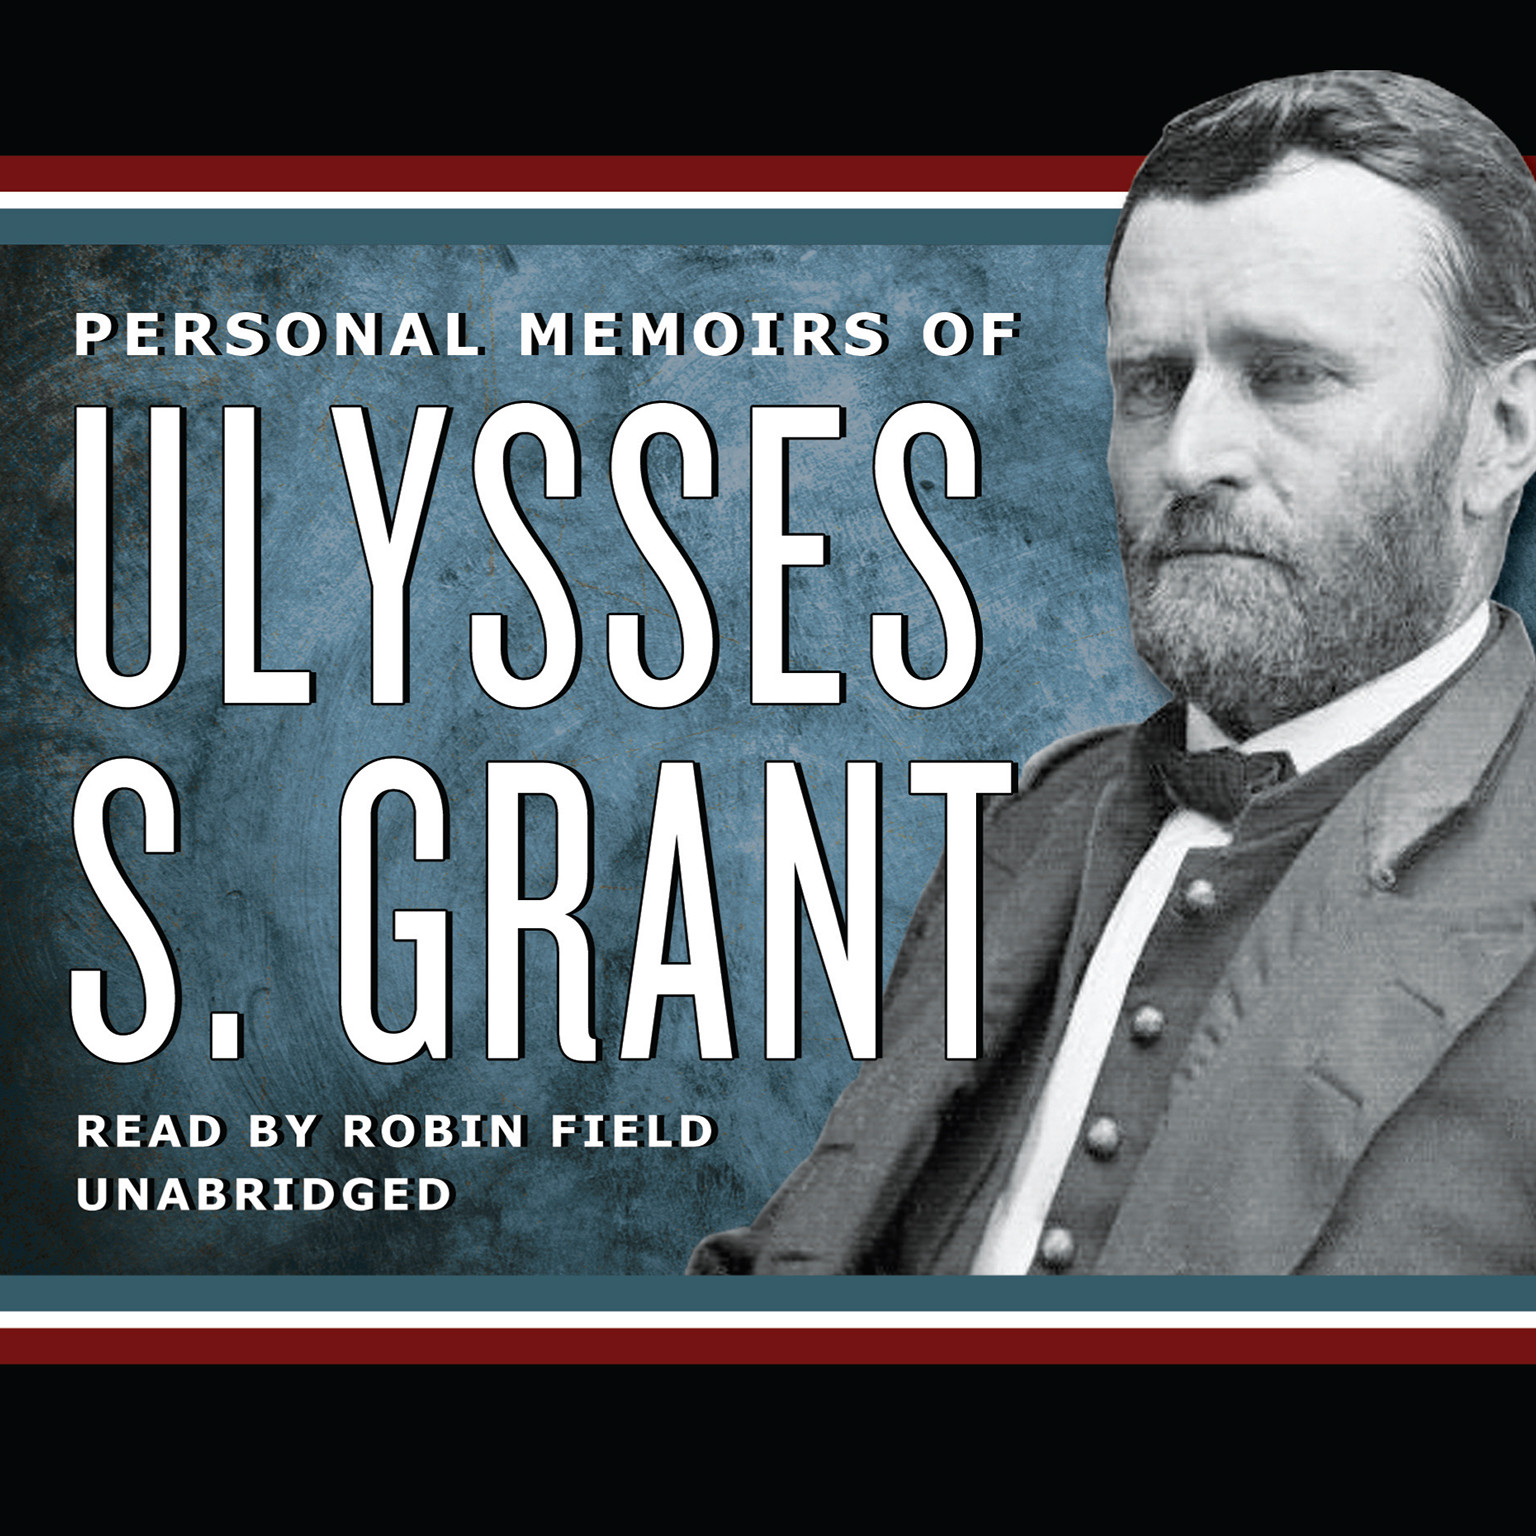 Printable Personal Memoirs of Ulysses S. Grant Audiobook Cover Art